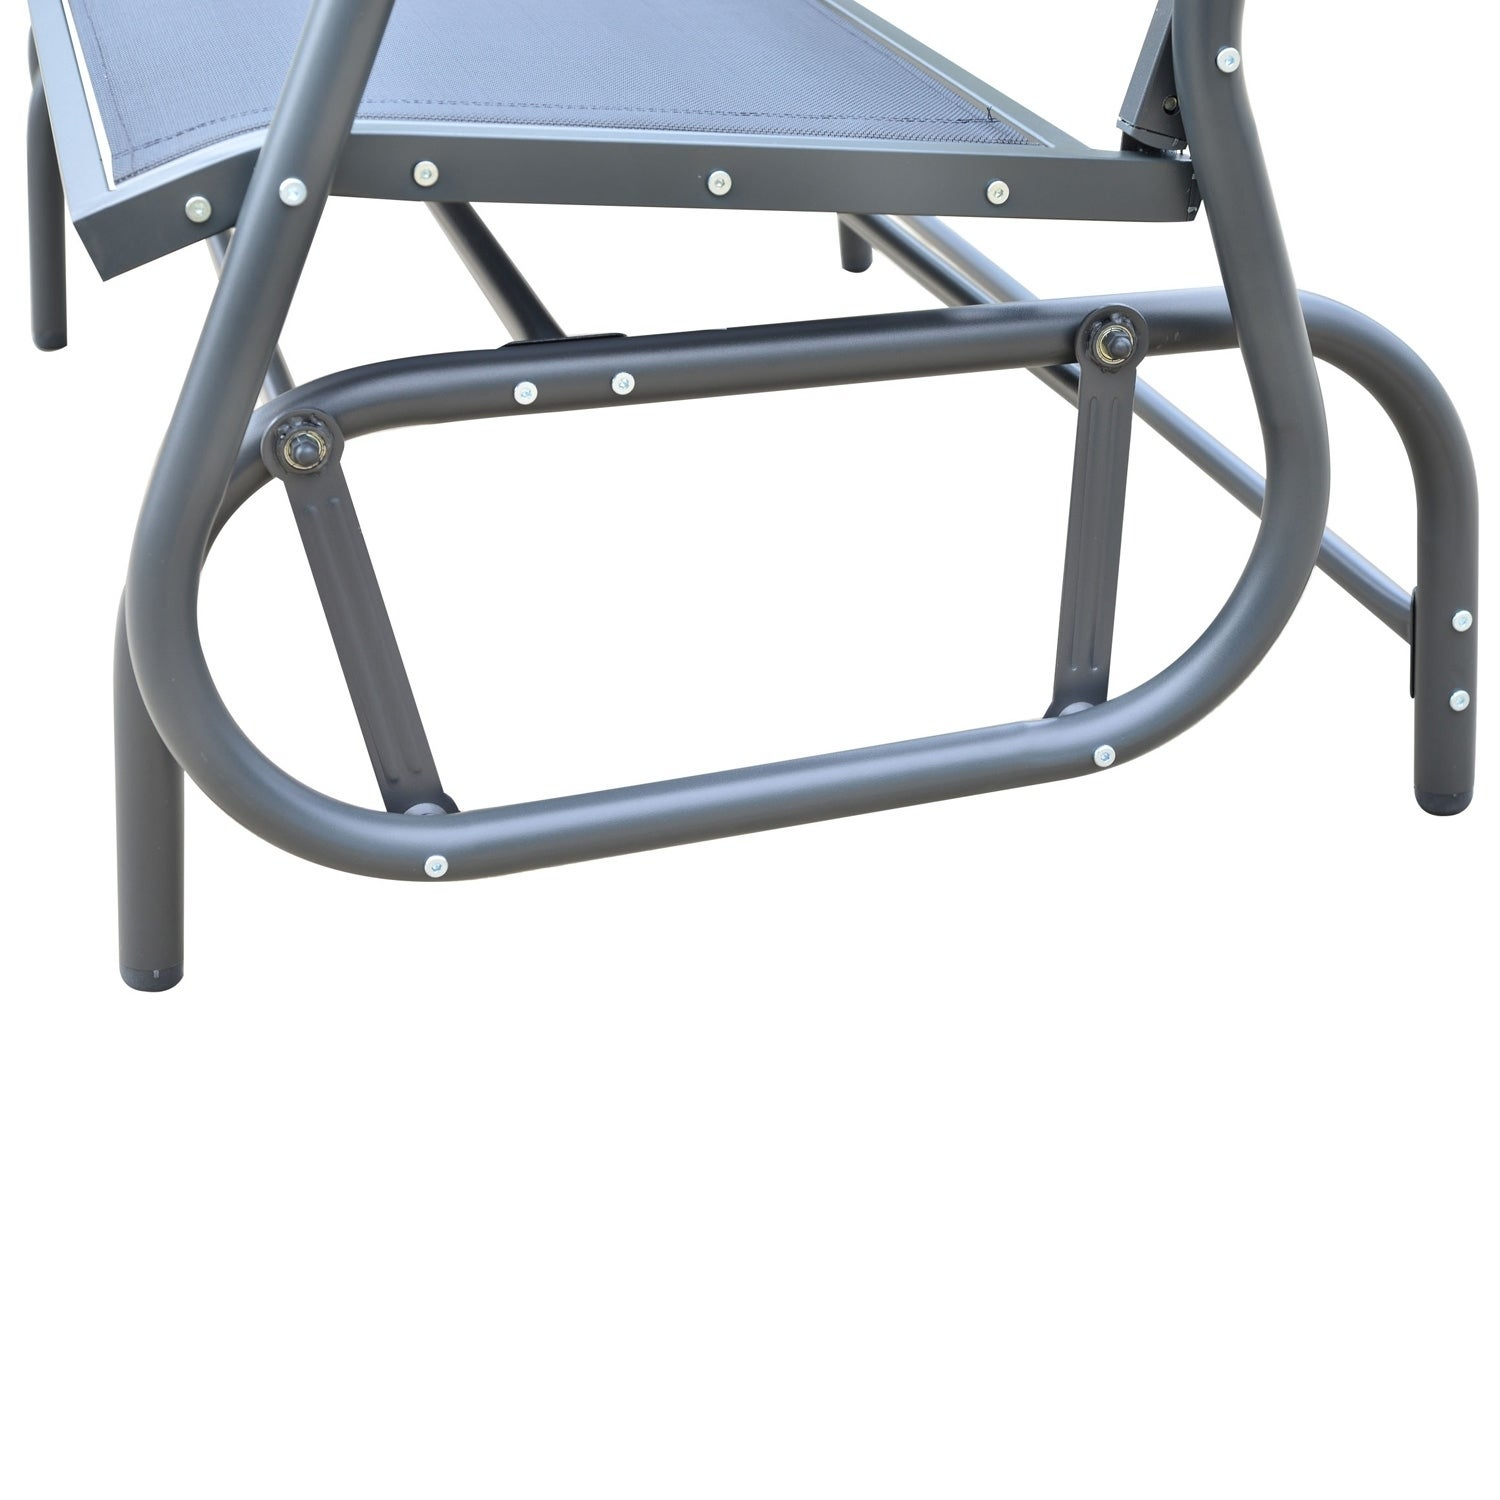 Aosom Outsunny Outdoor Patio Swing Glider Bench Chair, Bl...